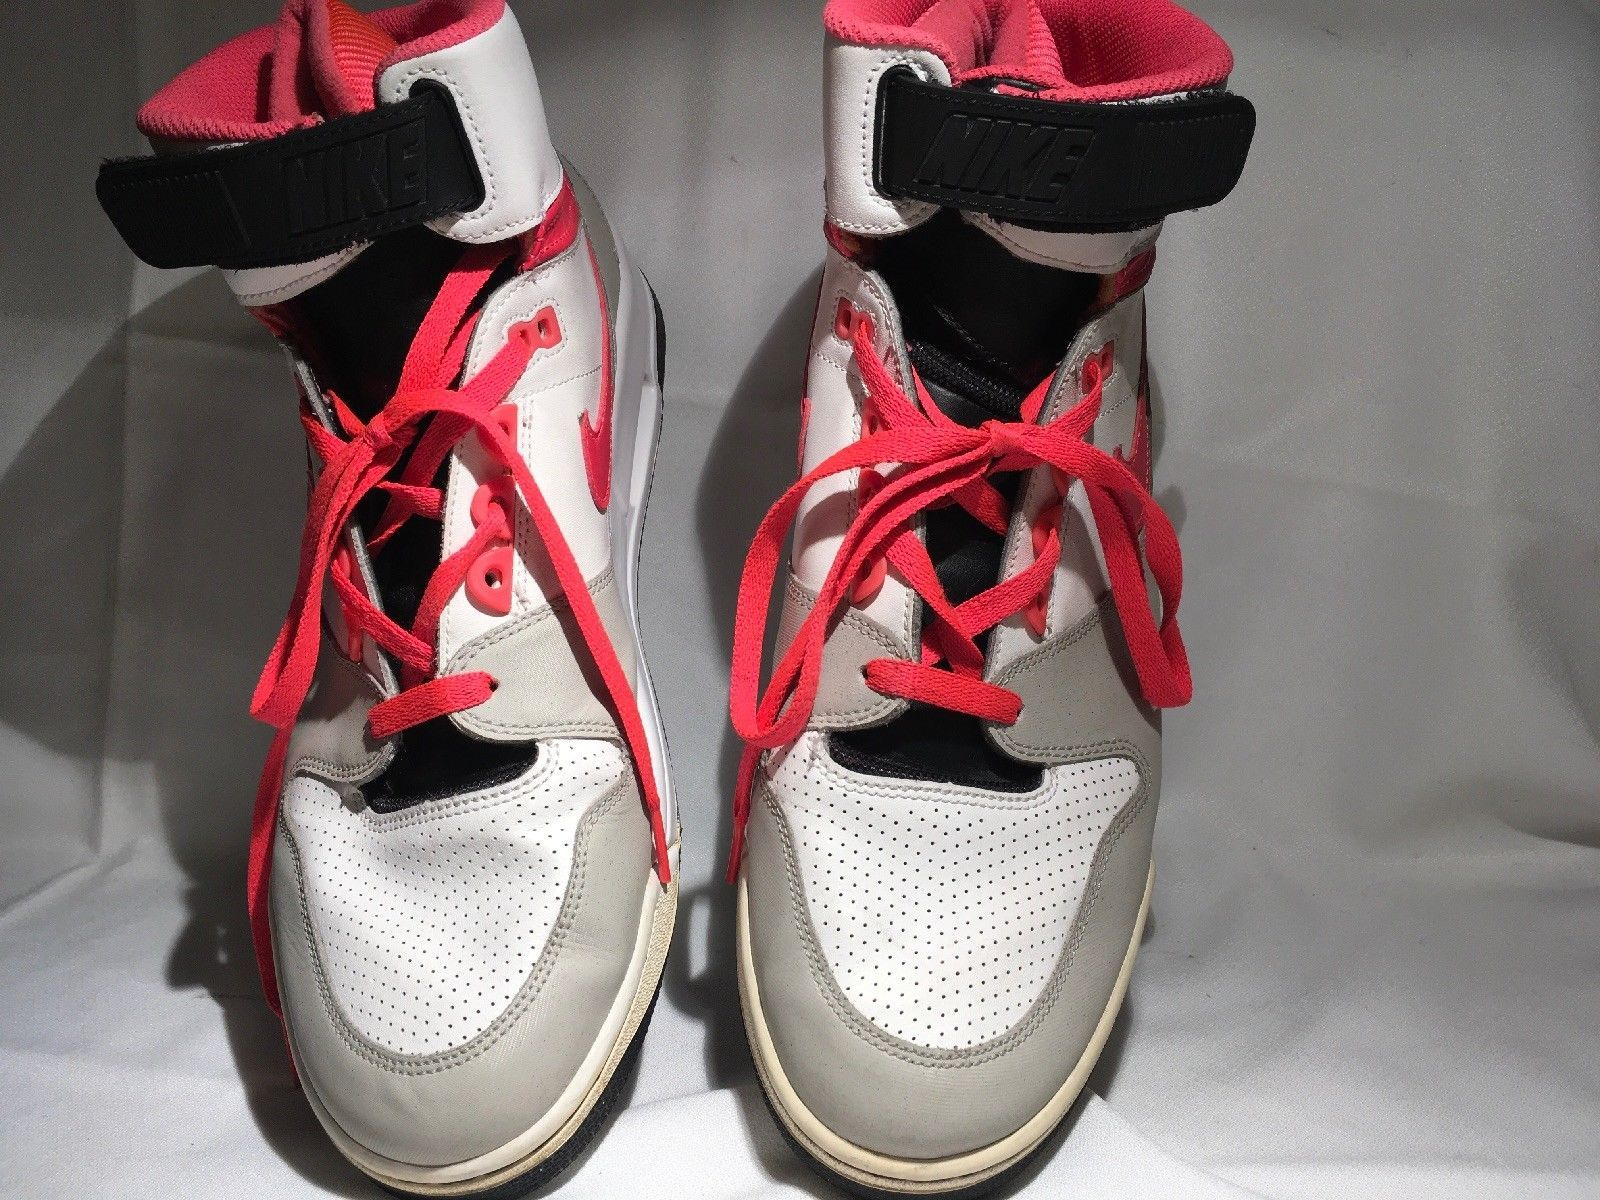 buy popular bd05f 30560 Nike Air Revolution High-top Hot Lava Red Basketball Shoes 303905-181 Sz  11.5